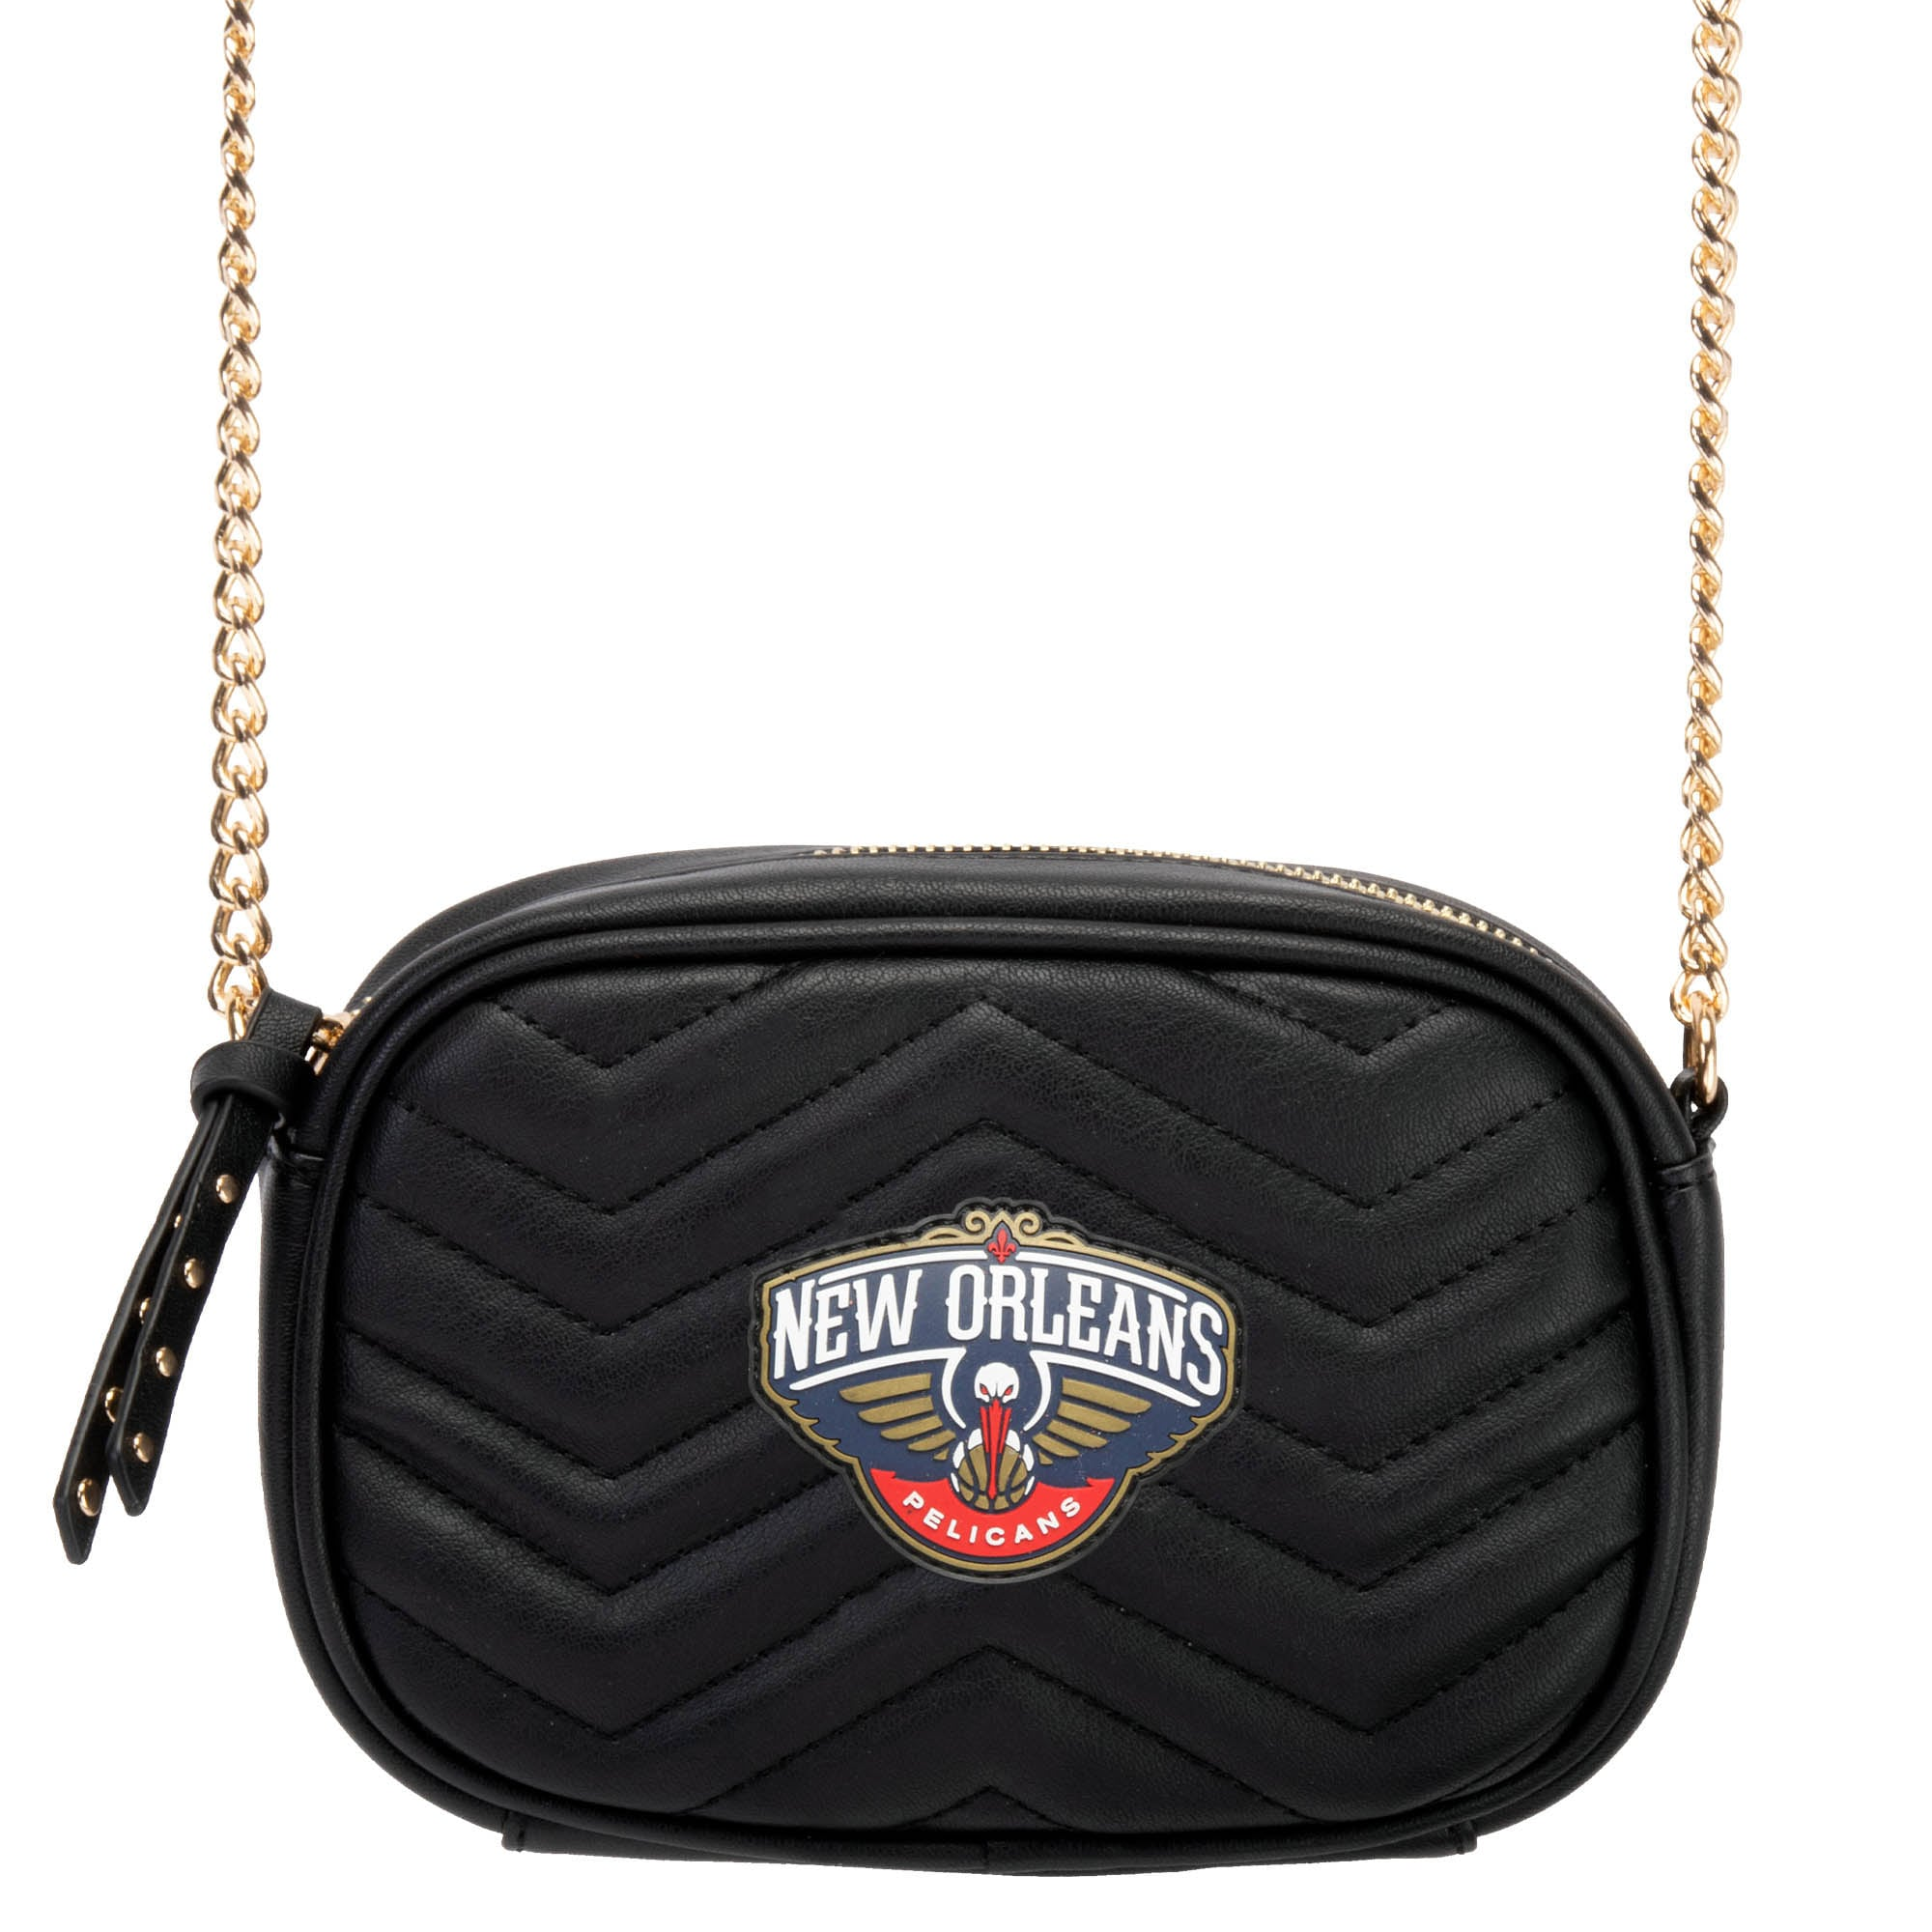 New Orleans Pelicans Women's Crossbody Bag - Black